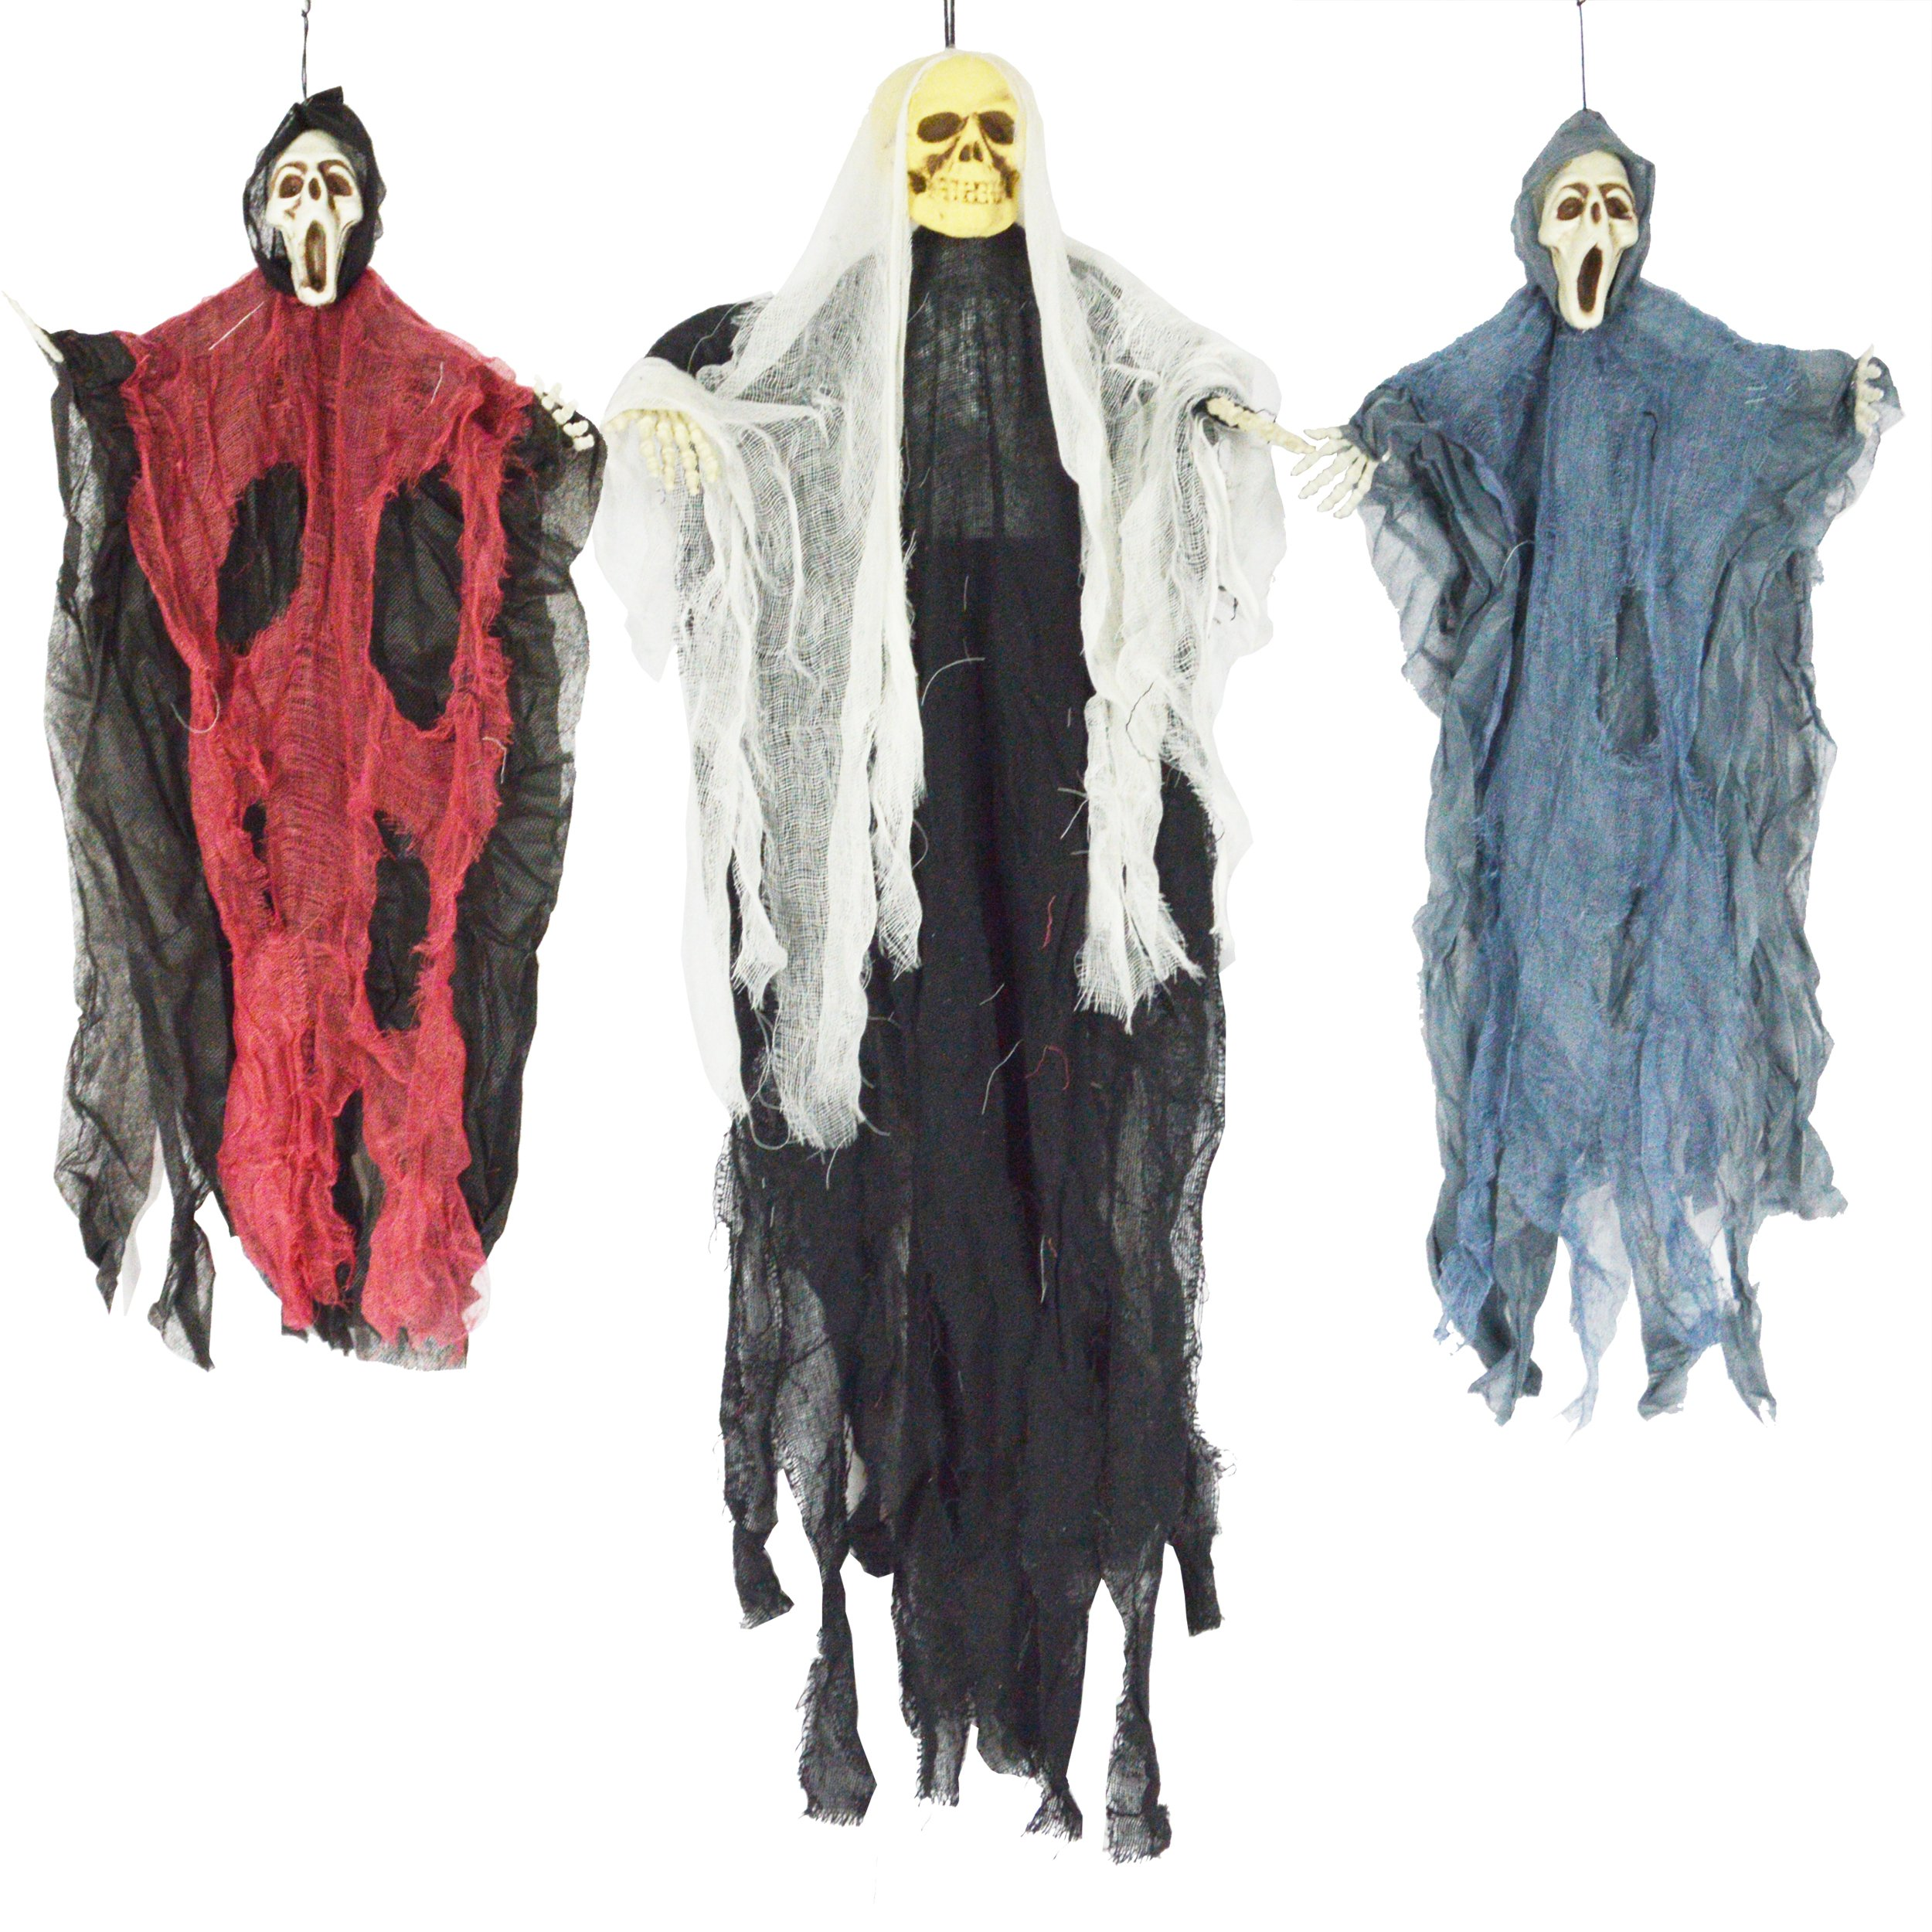 JOYIN Set of Three Hanging Skeleton Ghost Halloween Decorations(One 35'' Hanging Ghost Skeleton and Two 25'' Hanging Reapers) by JOYIN